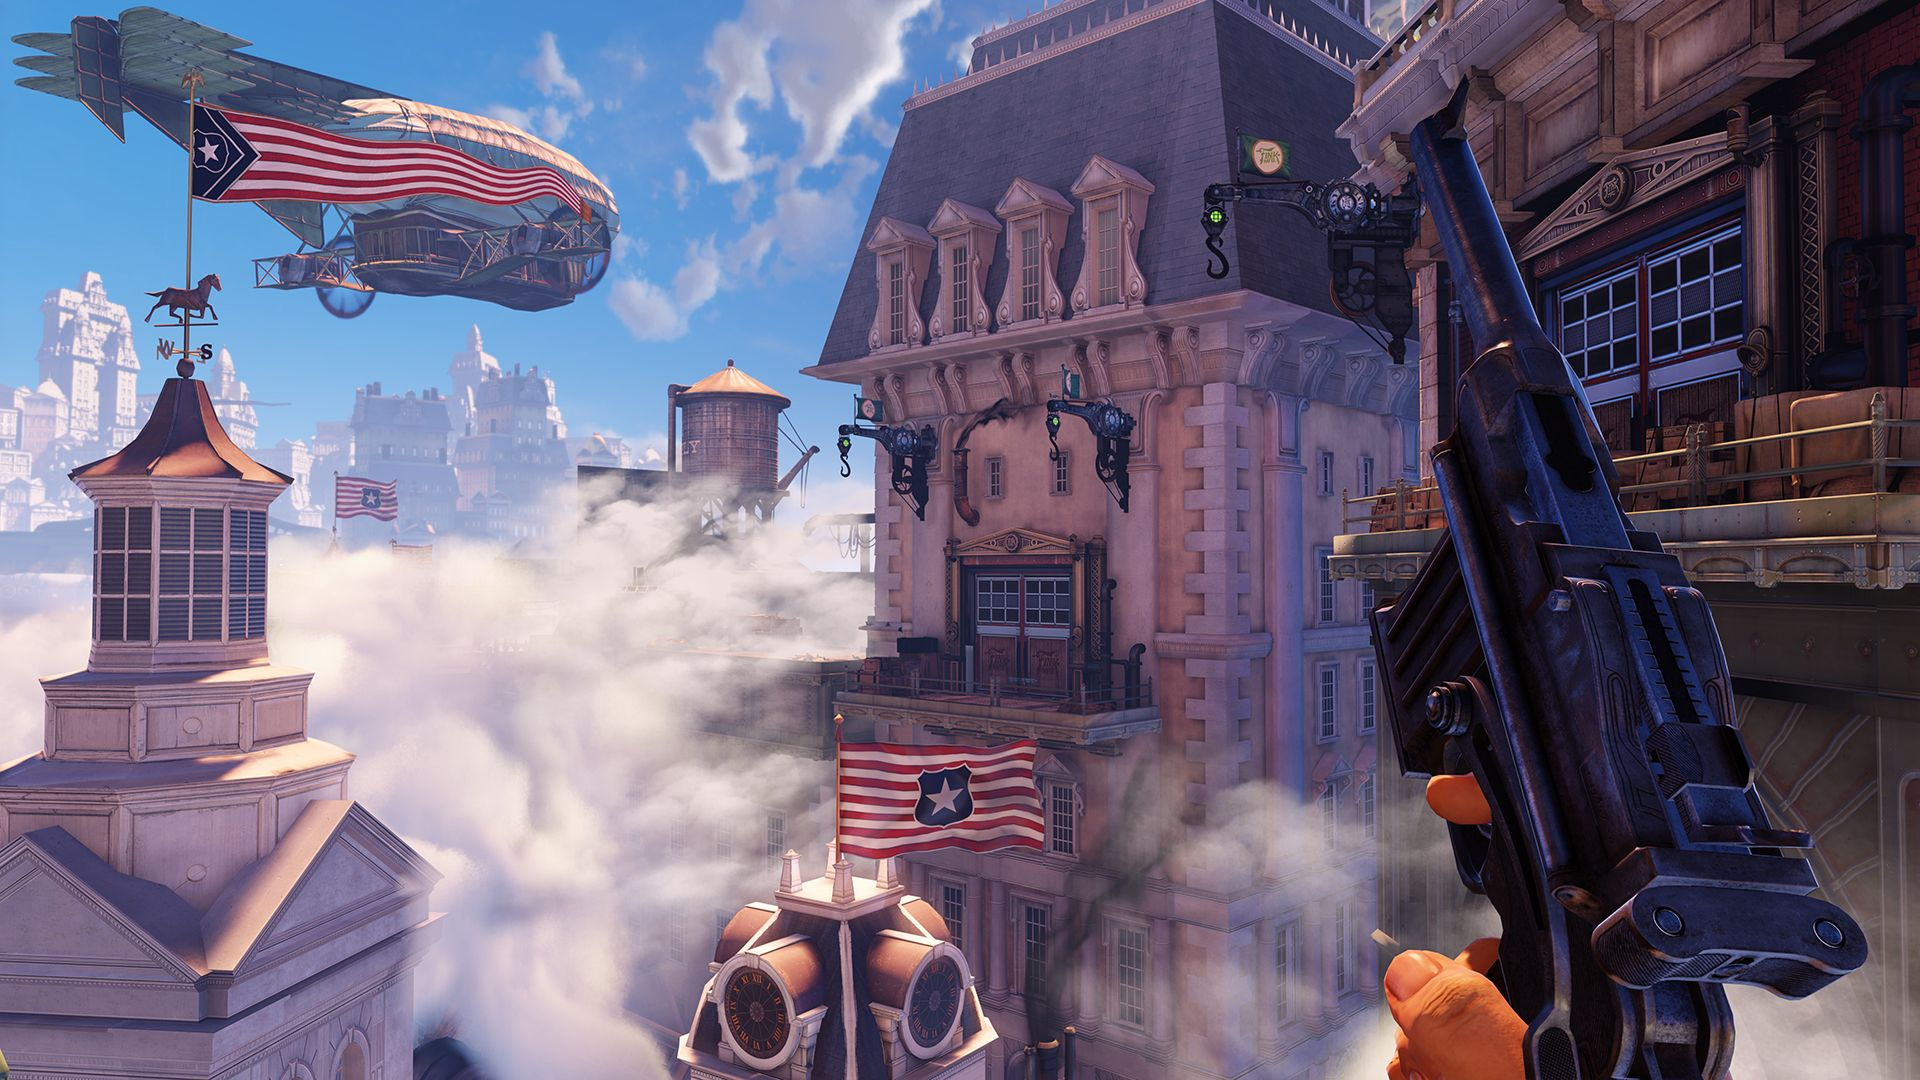 Bioshock-Infinite-delayed-again-console-yourself-with-these-screenshots-1.jpg